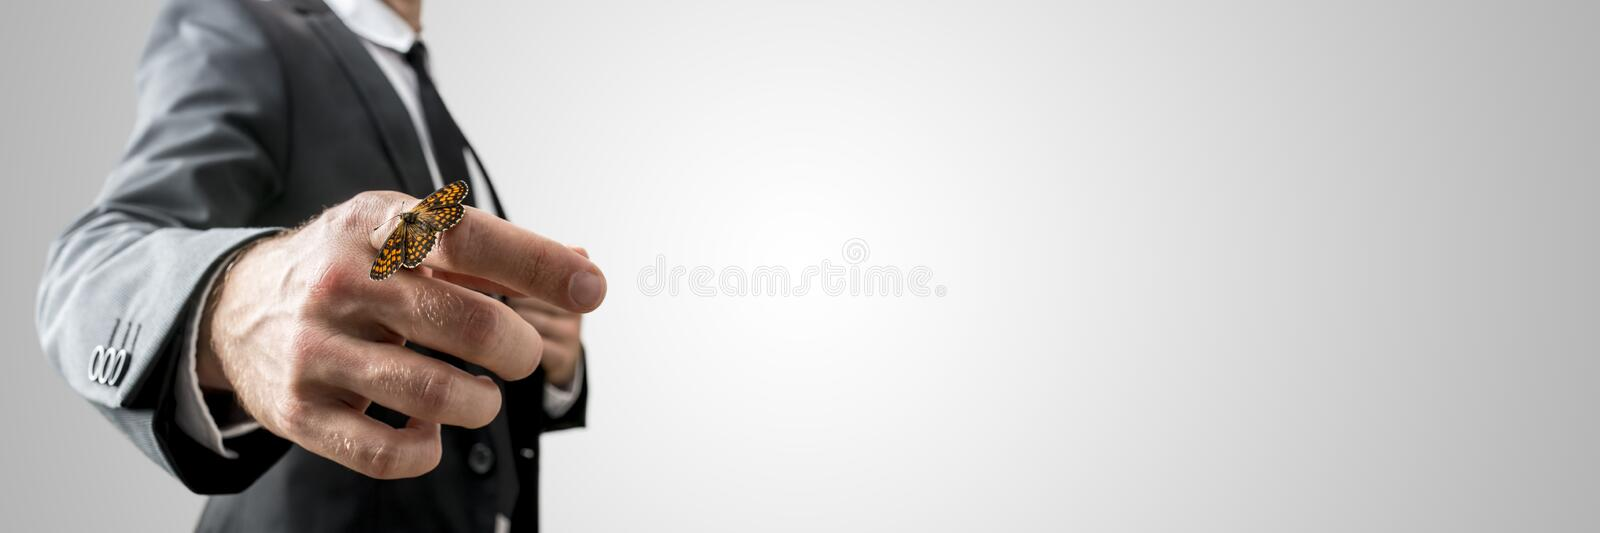 Businessman with a butterfly on his finger royalty free stock photography